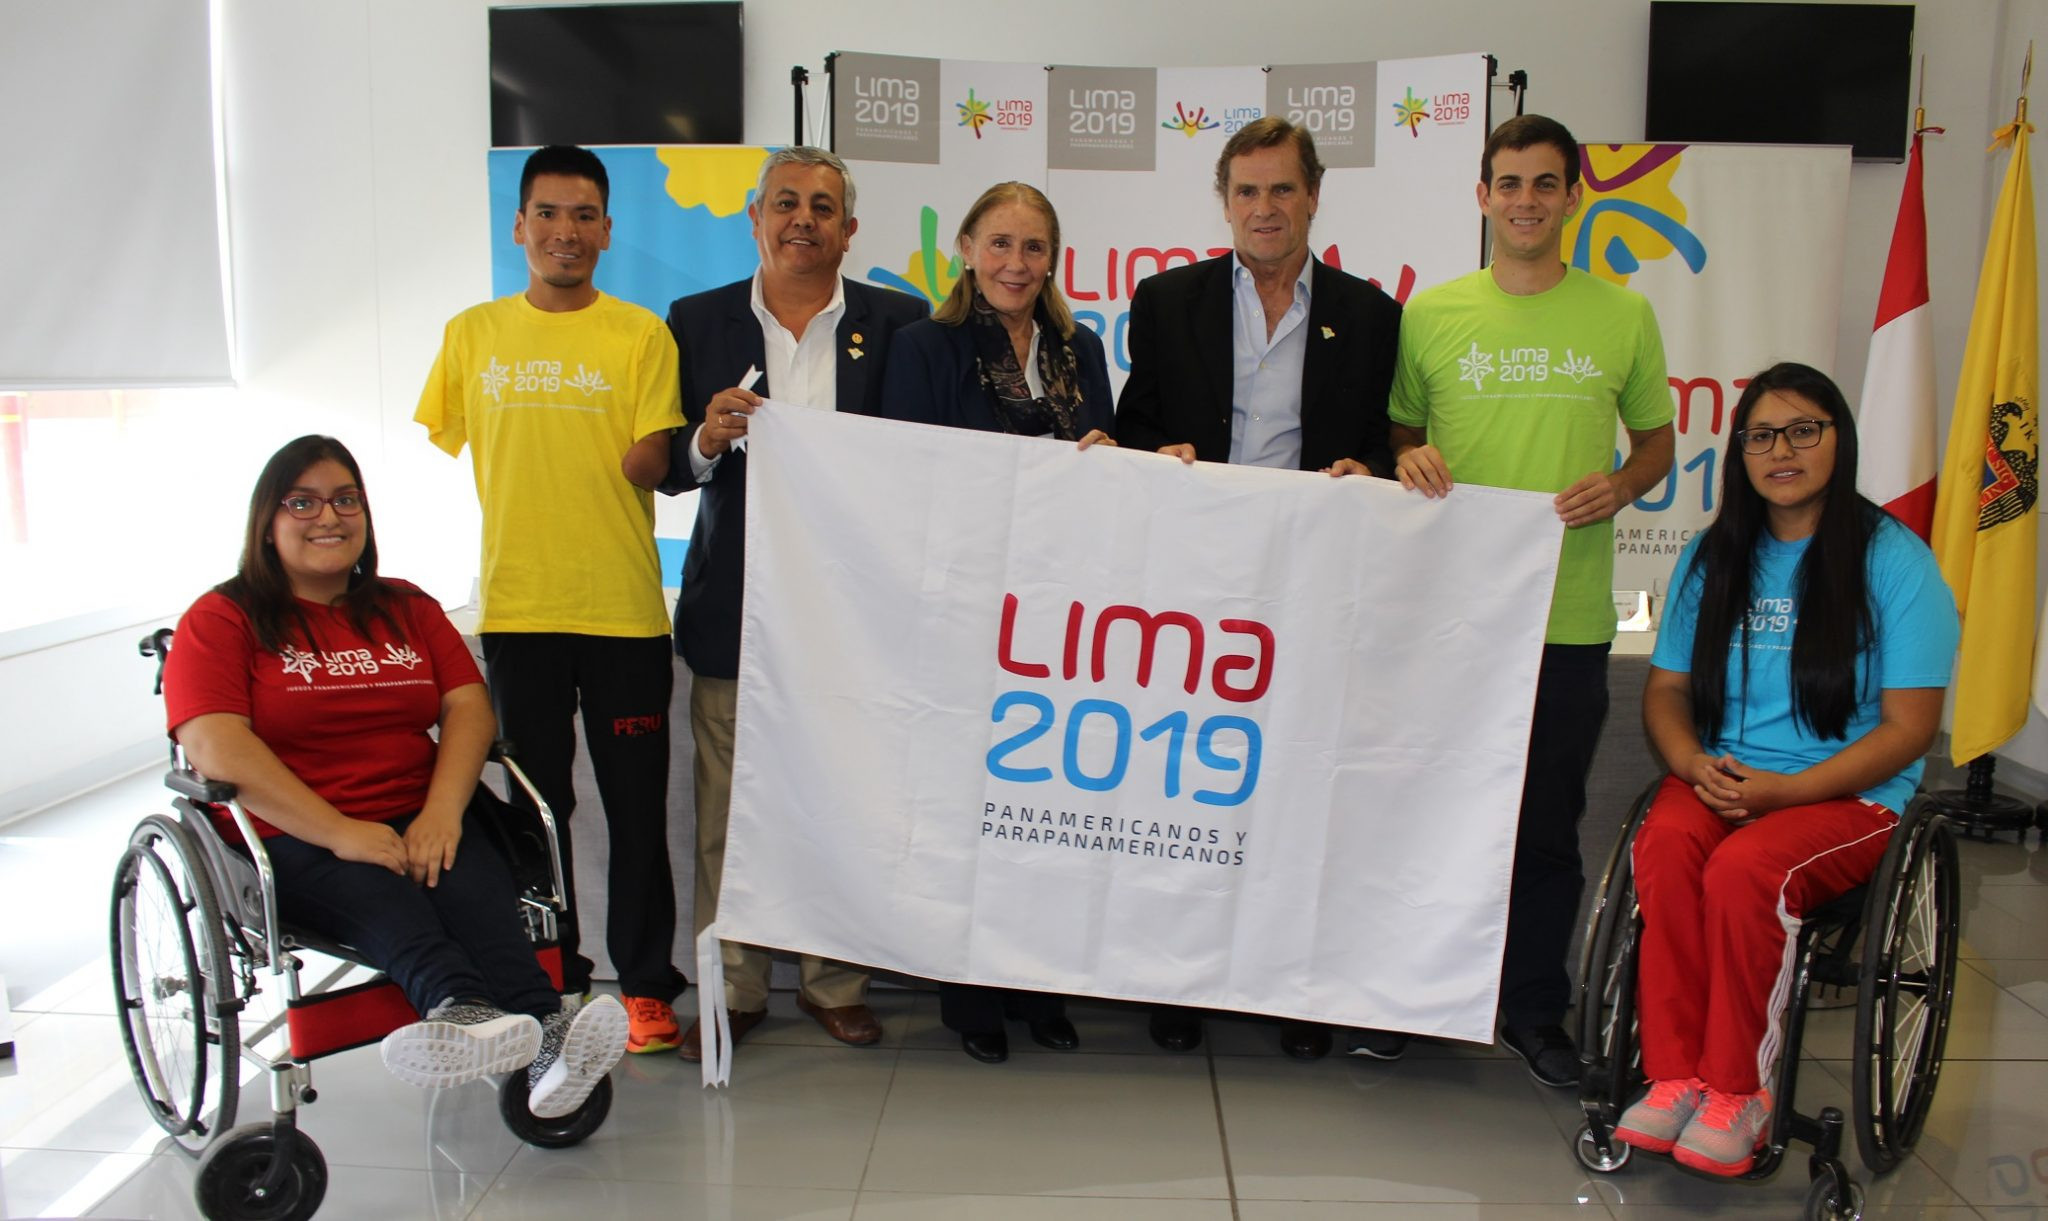 Organisers of the 2019 Parapan Am Games in Lima have organised a sports demonstration event at the National Stadium ©Lima 2019